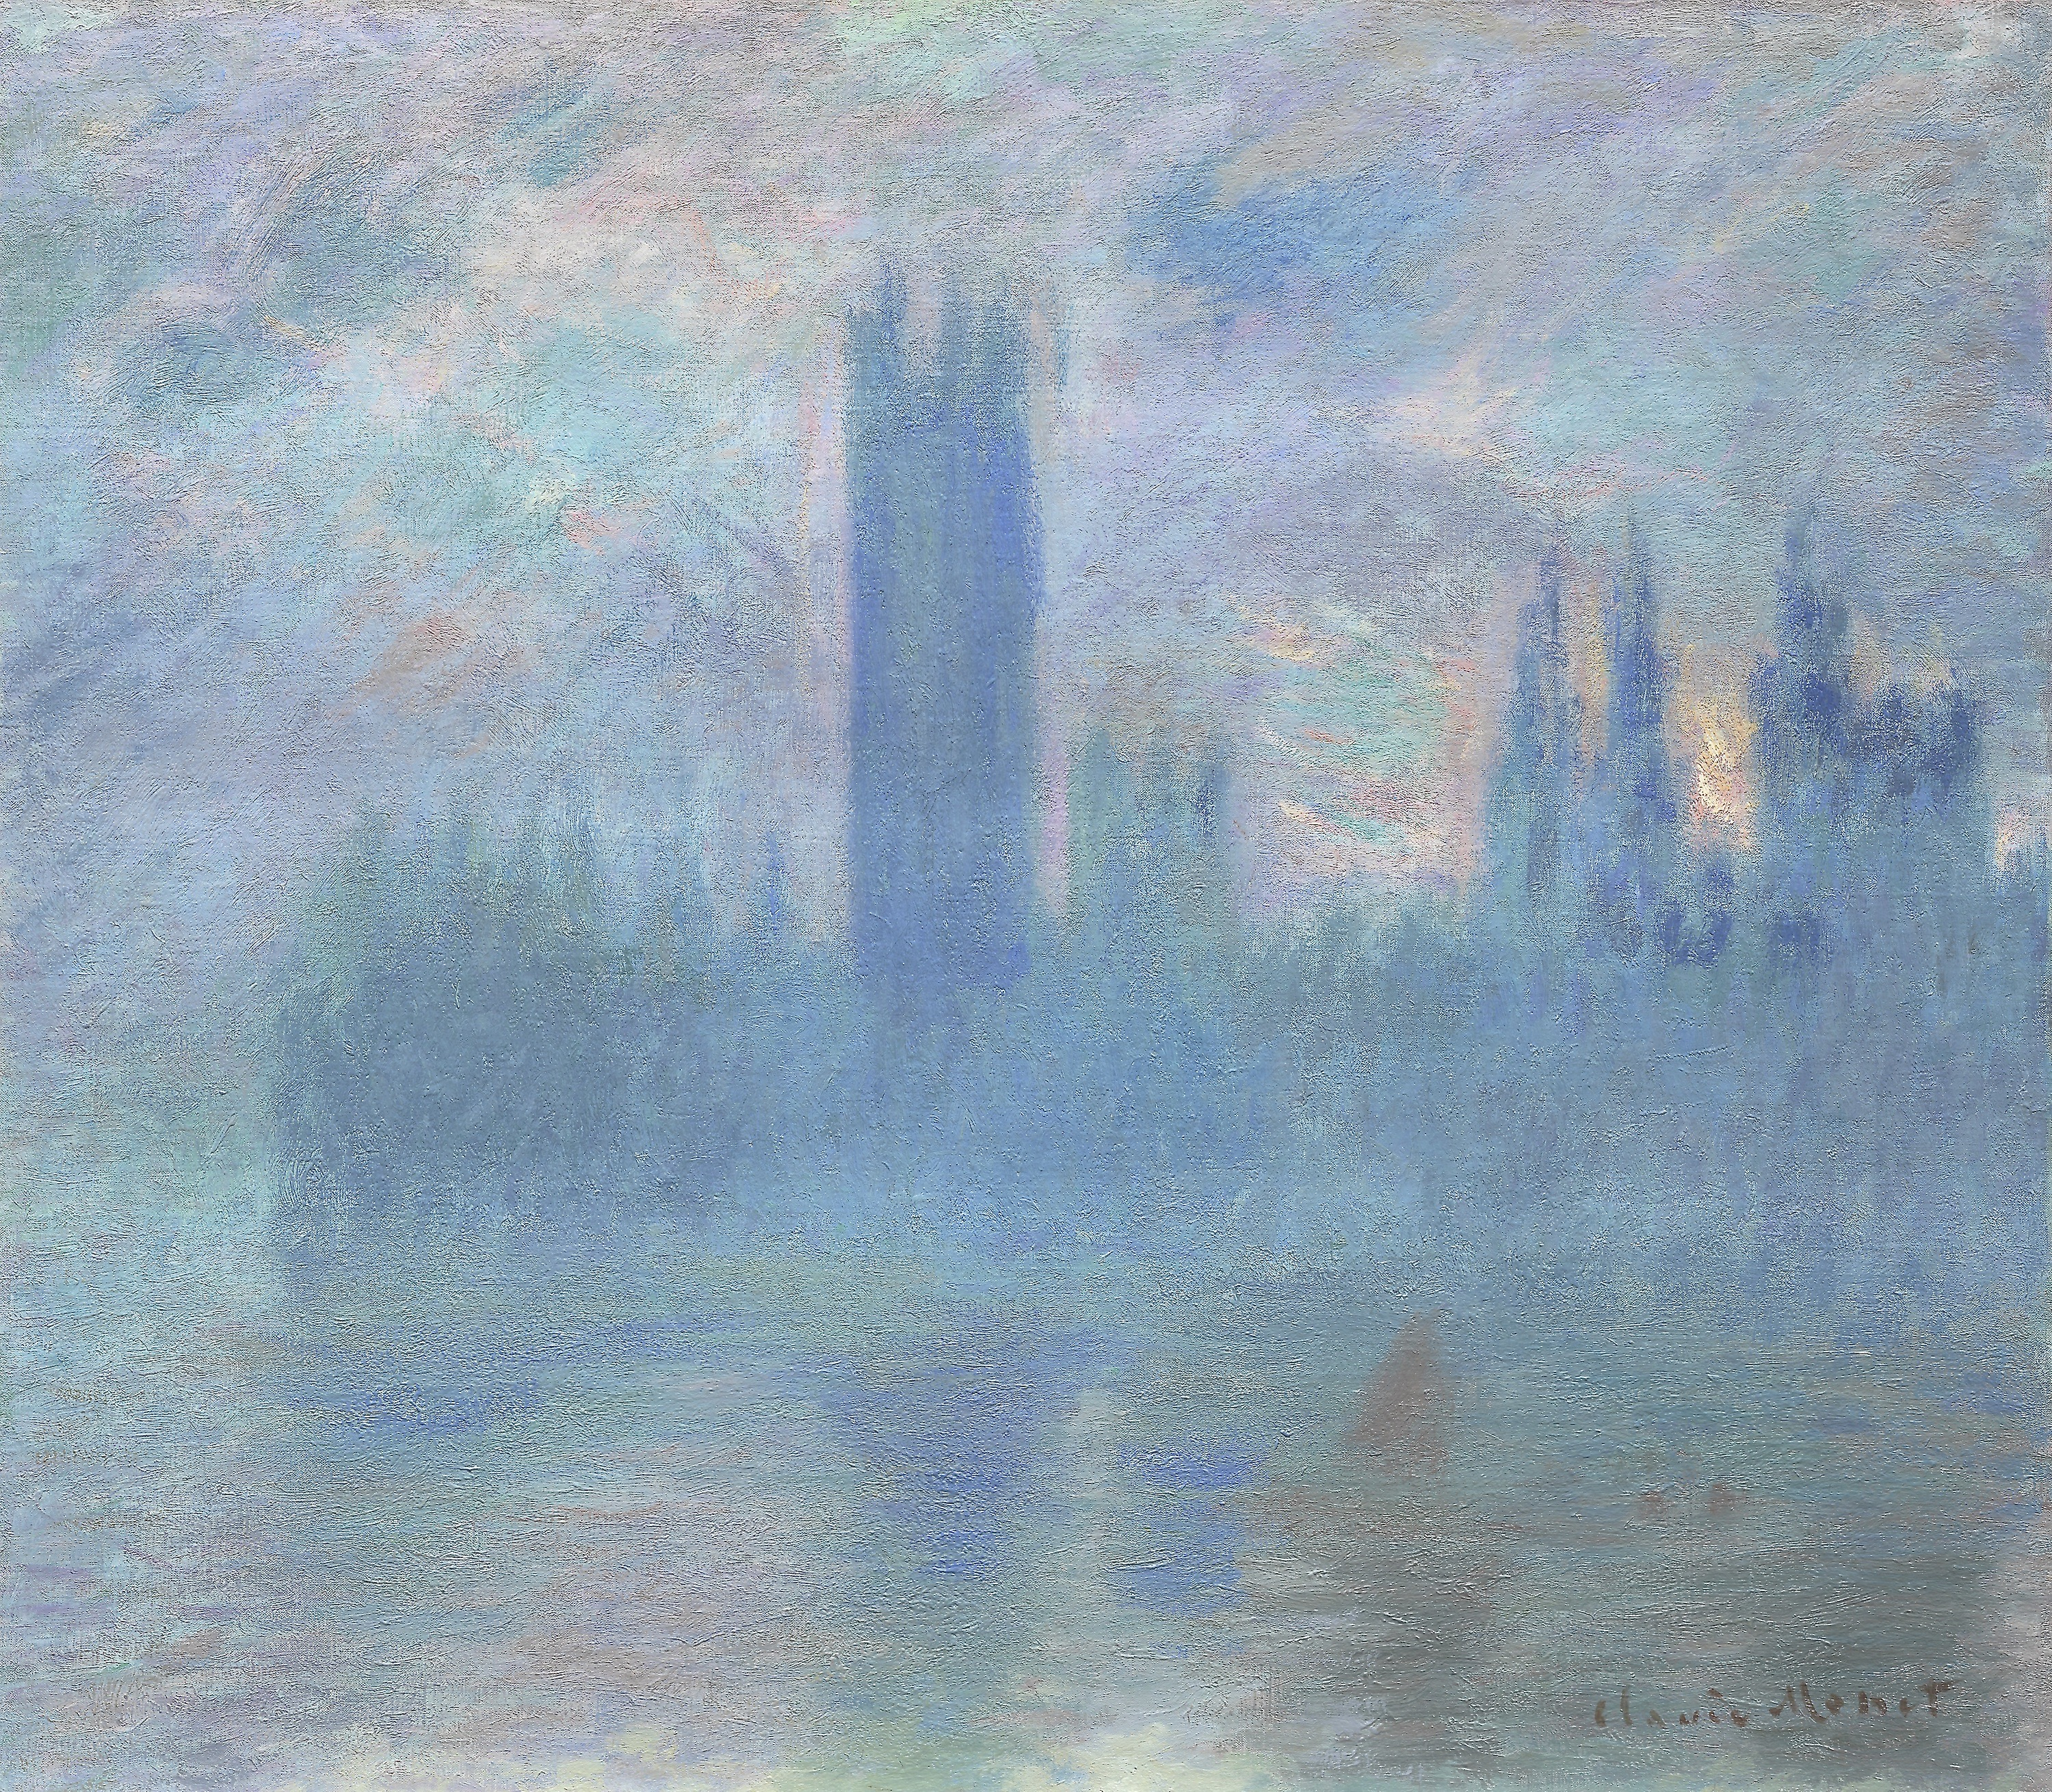 Claude_Monet,_Houses_of_Parliament,_London,_1900-1903,_1933.1164,_Art_Institute_of_Chicago